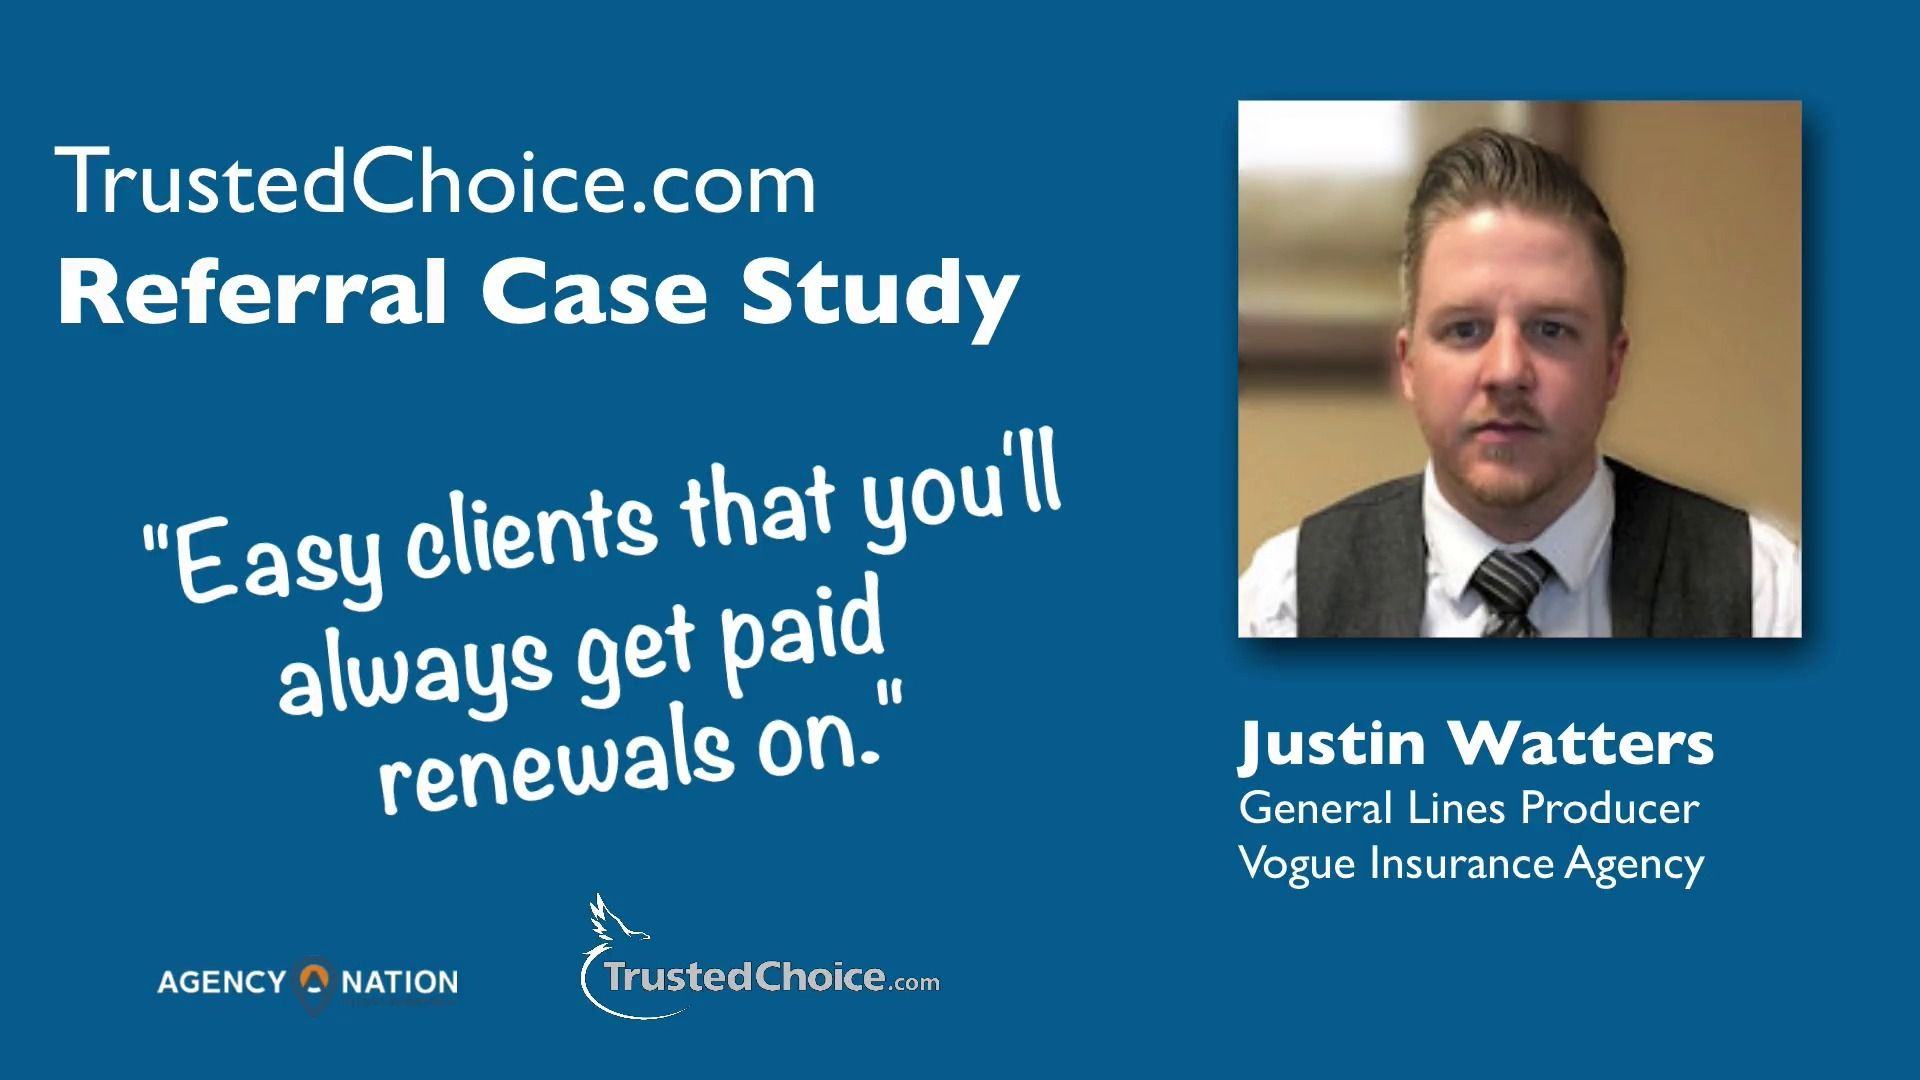 On April 19th 2016 Marty Agather Vp Of Business Development At Trustedchoice Com Interviewed Justin Watters Producer At Insurance Marketing Insurance Agency